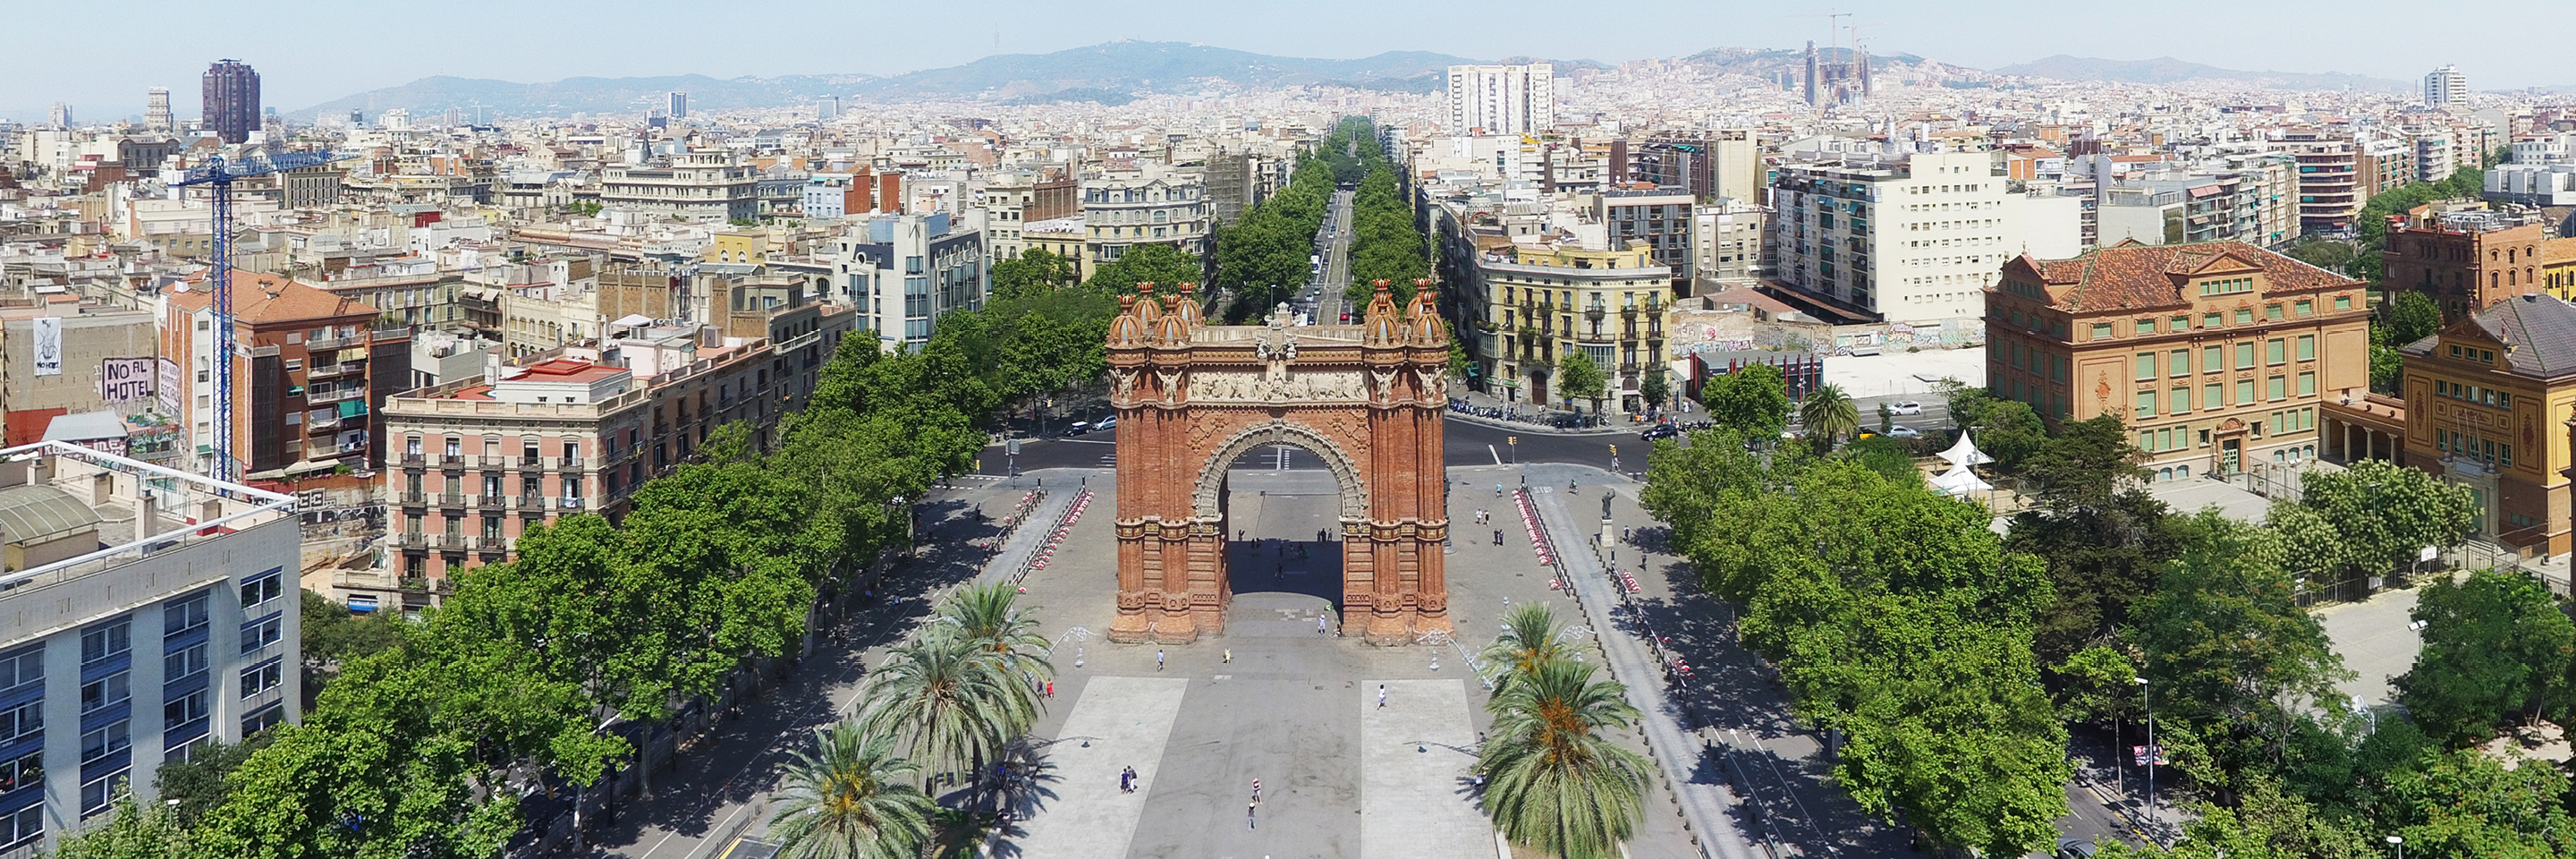 Grand France WWII Remembrance & History Cruise with 2 Nights in Nice & 3 Nights in Barcelona (Southbound)